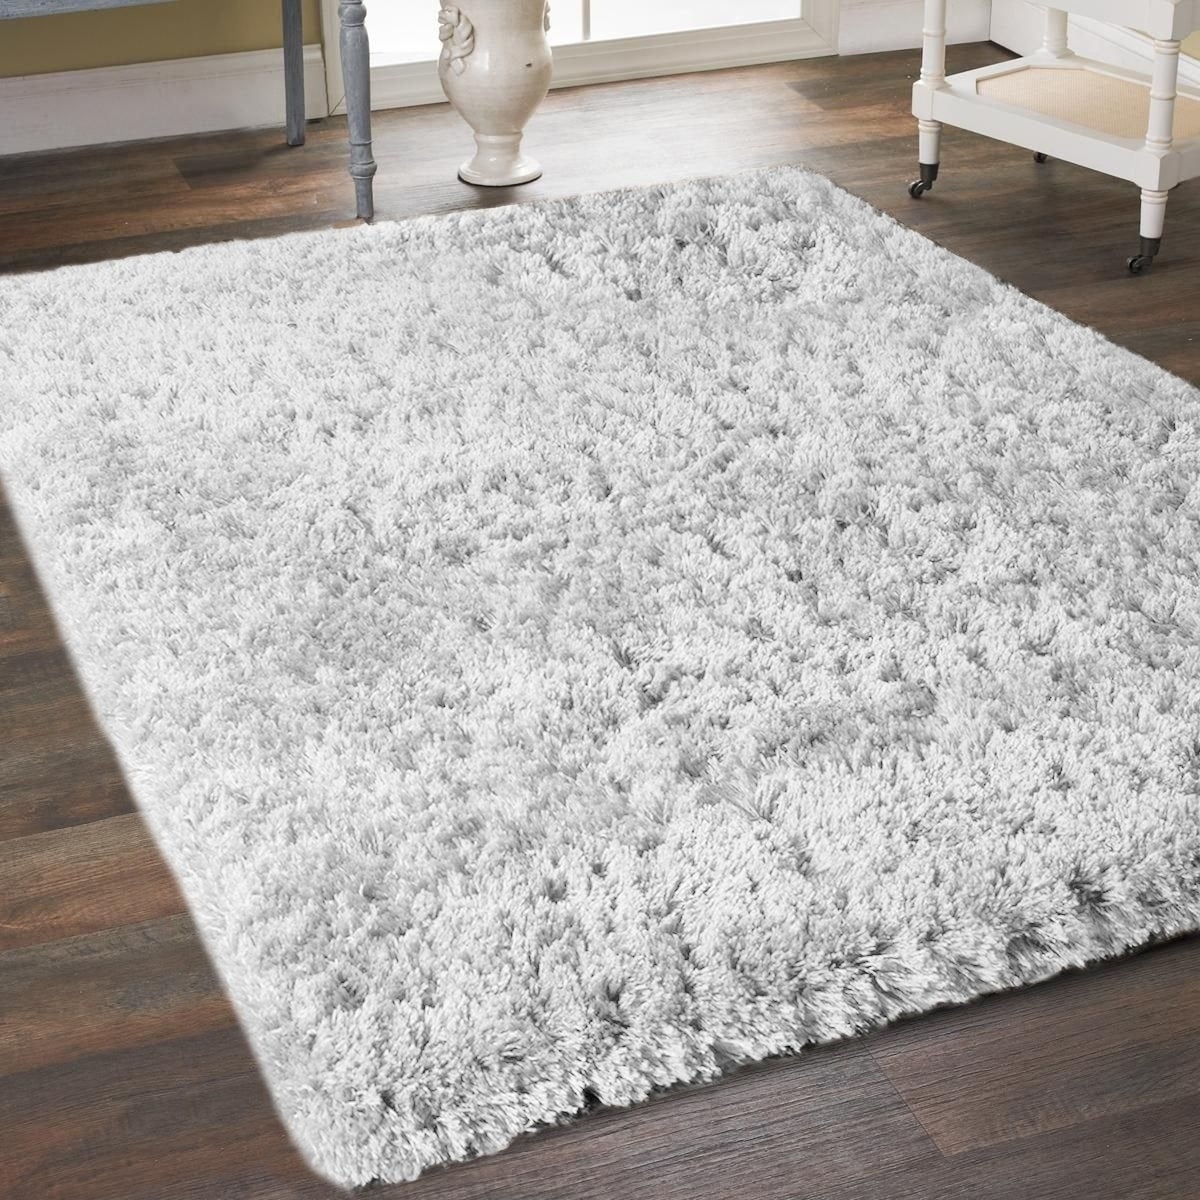 Thick Plush Cozy Gy Area Rug